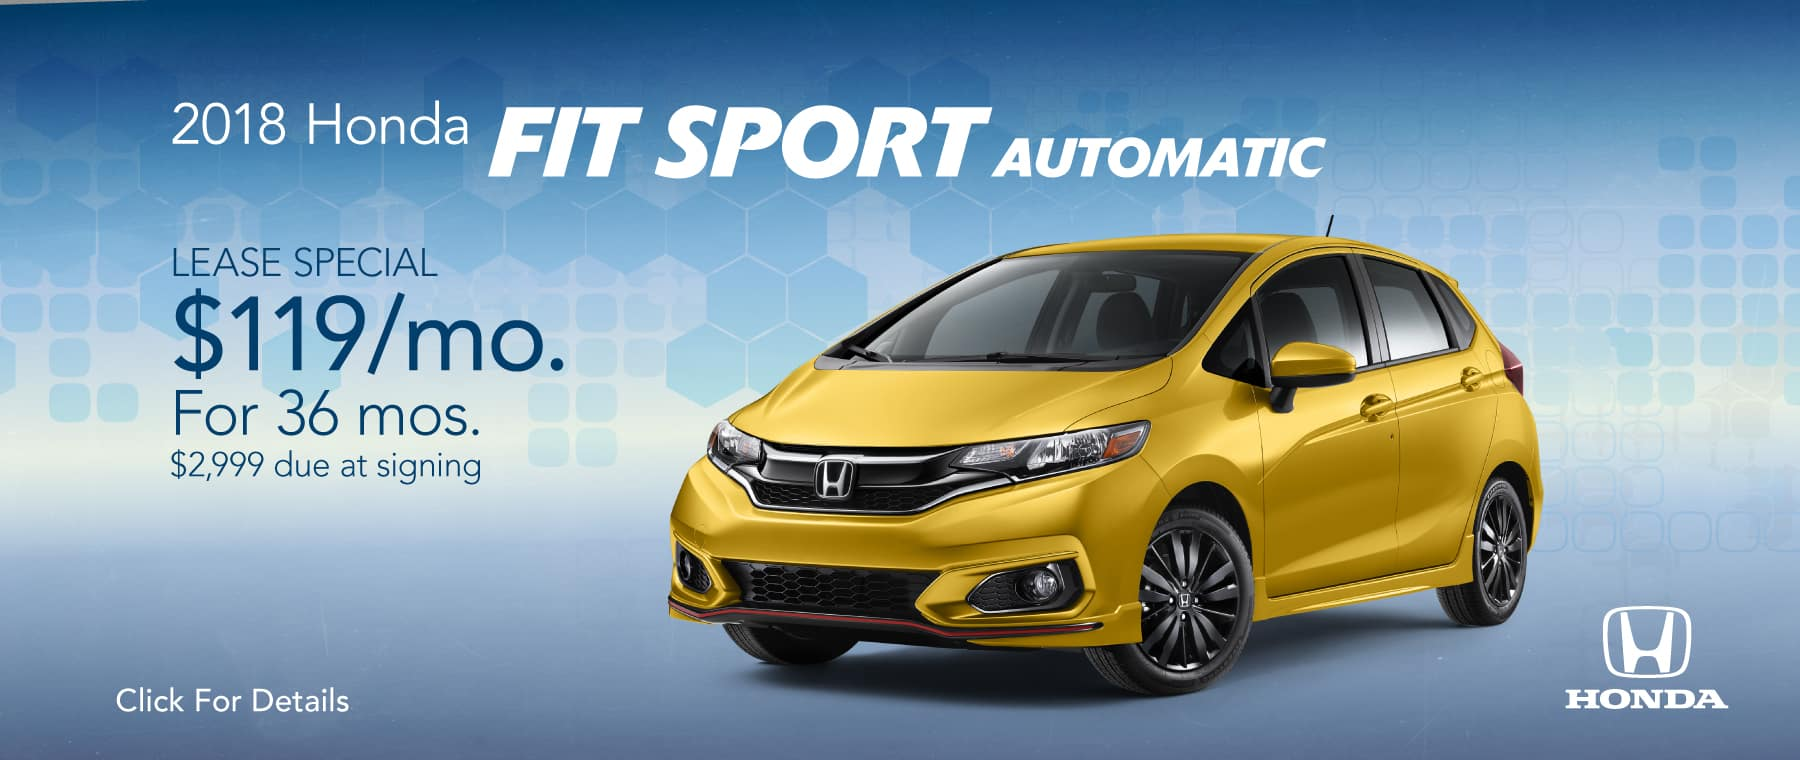 2018 Honda Fit Sport Automatic  $119/mo. For 36 mos. $2,999 due at signing*